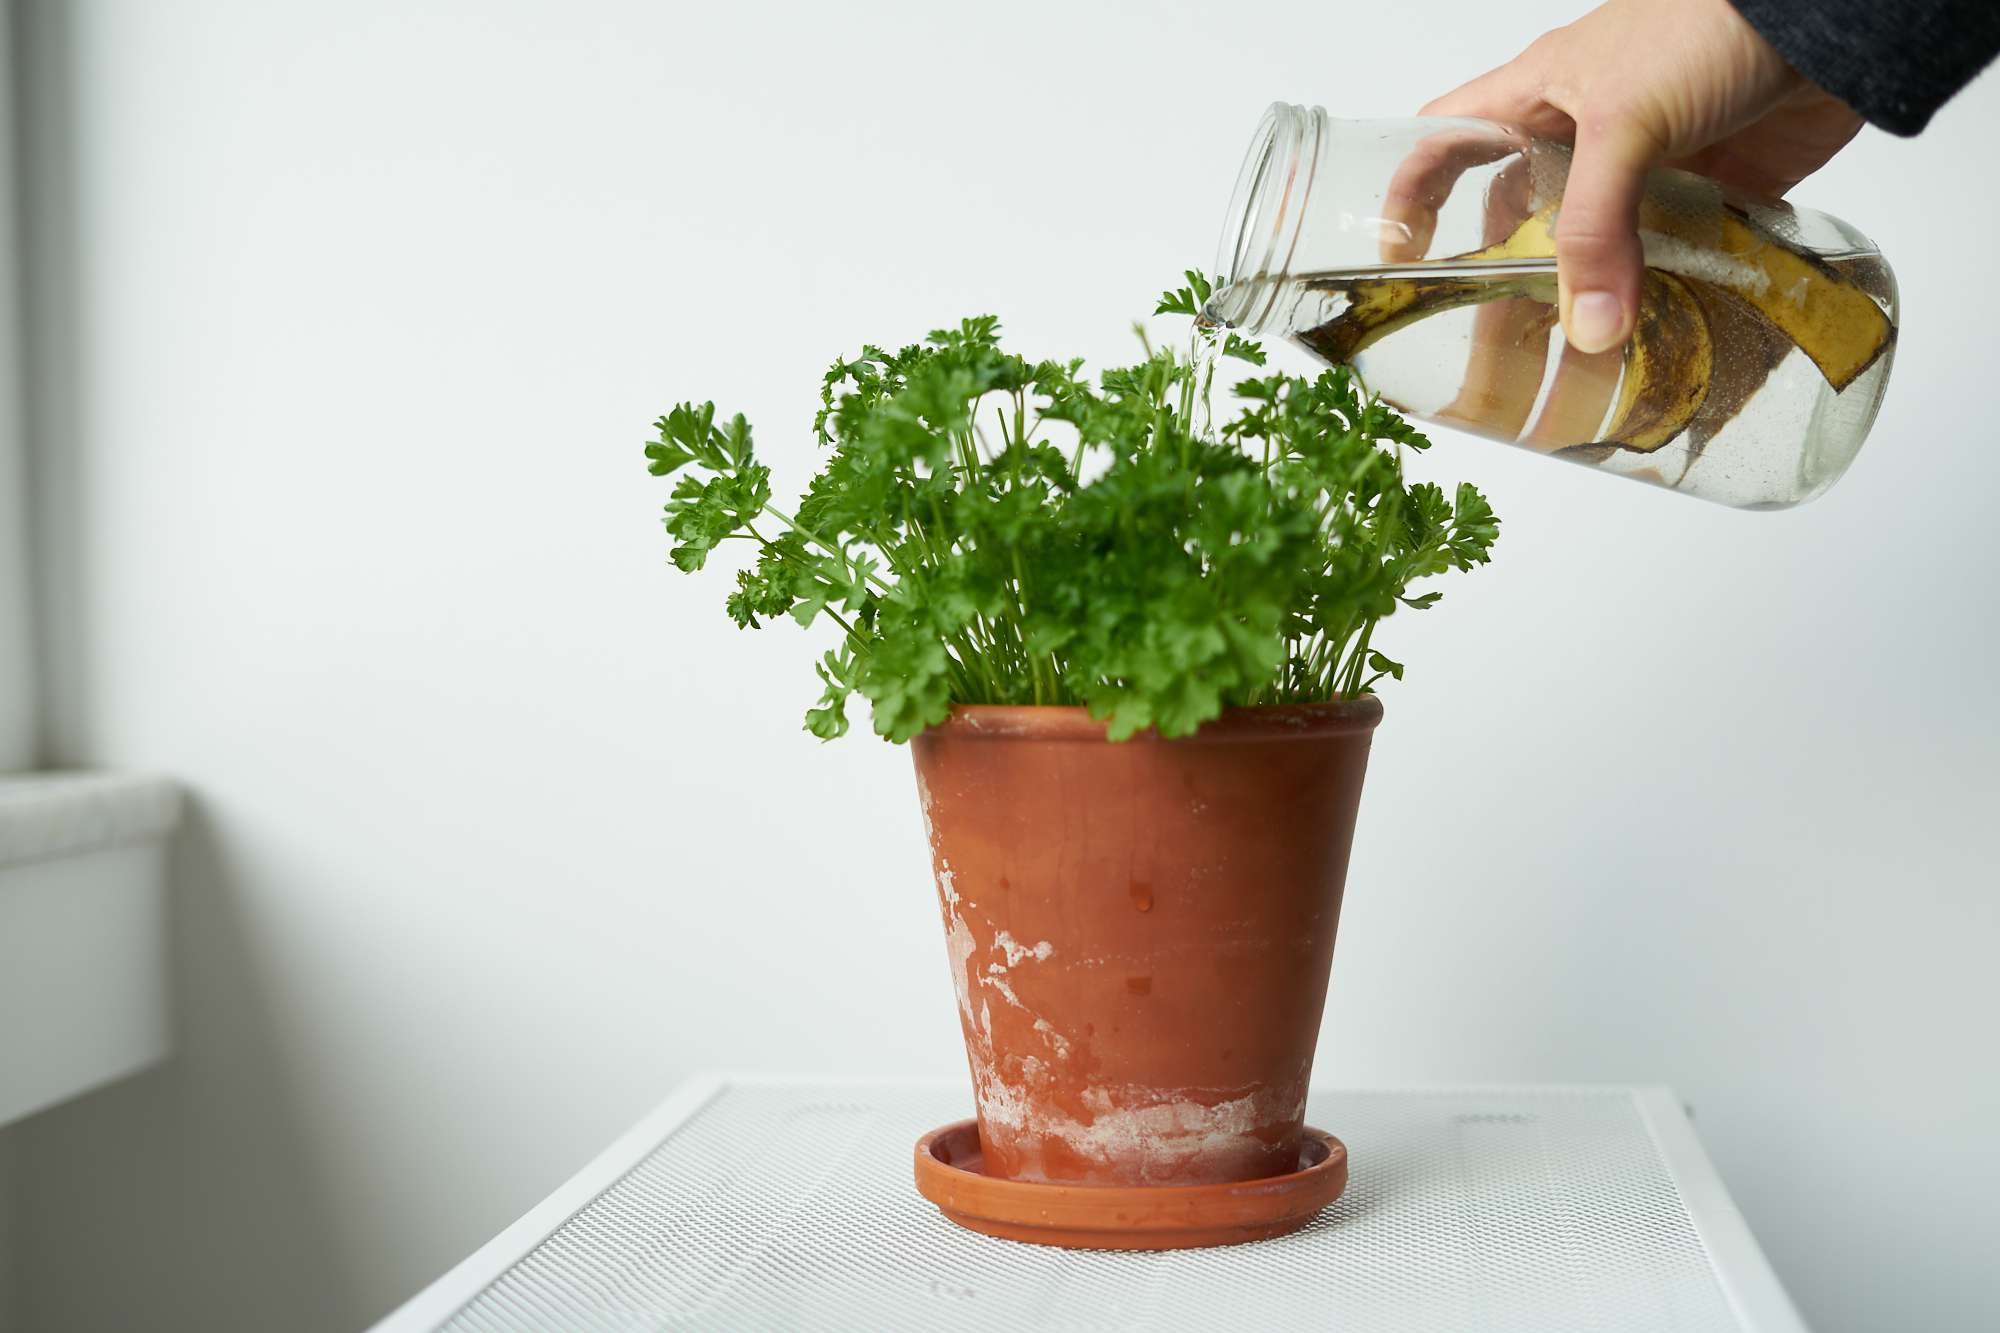 hand waters houseplant in terra cotta pot with a mason jar filled with old banana and water